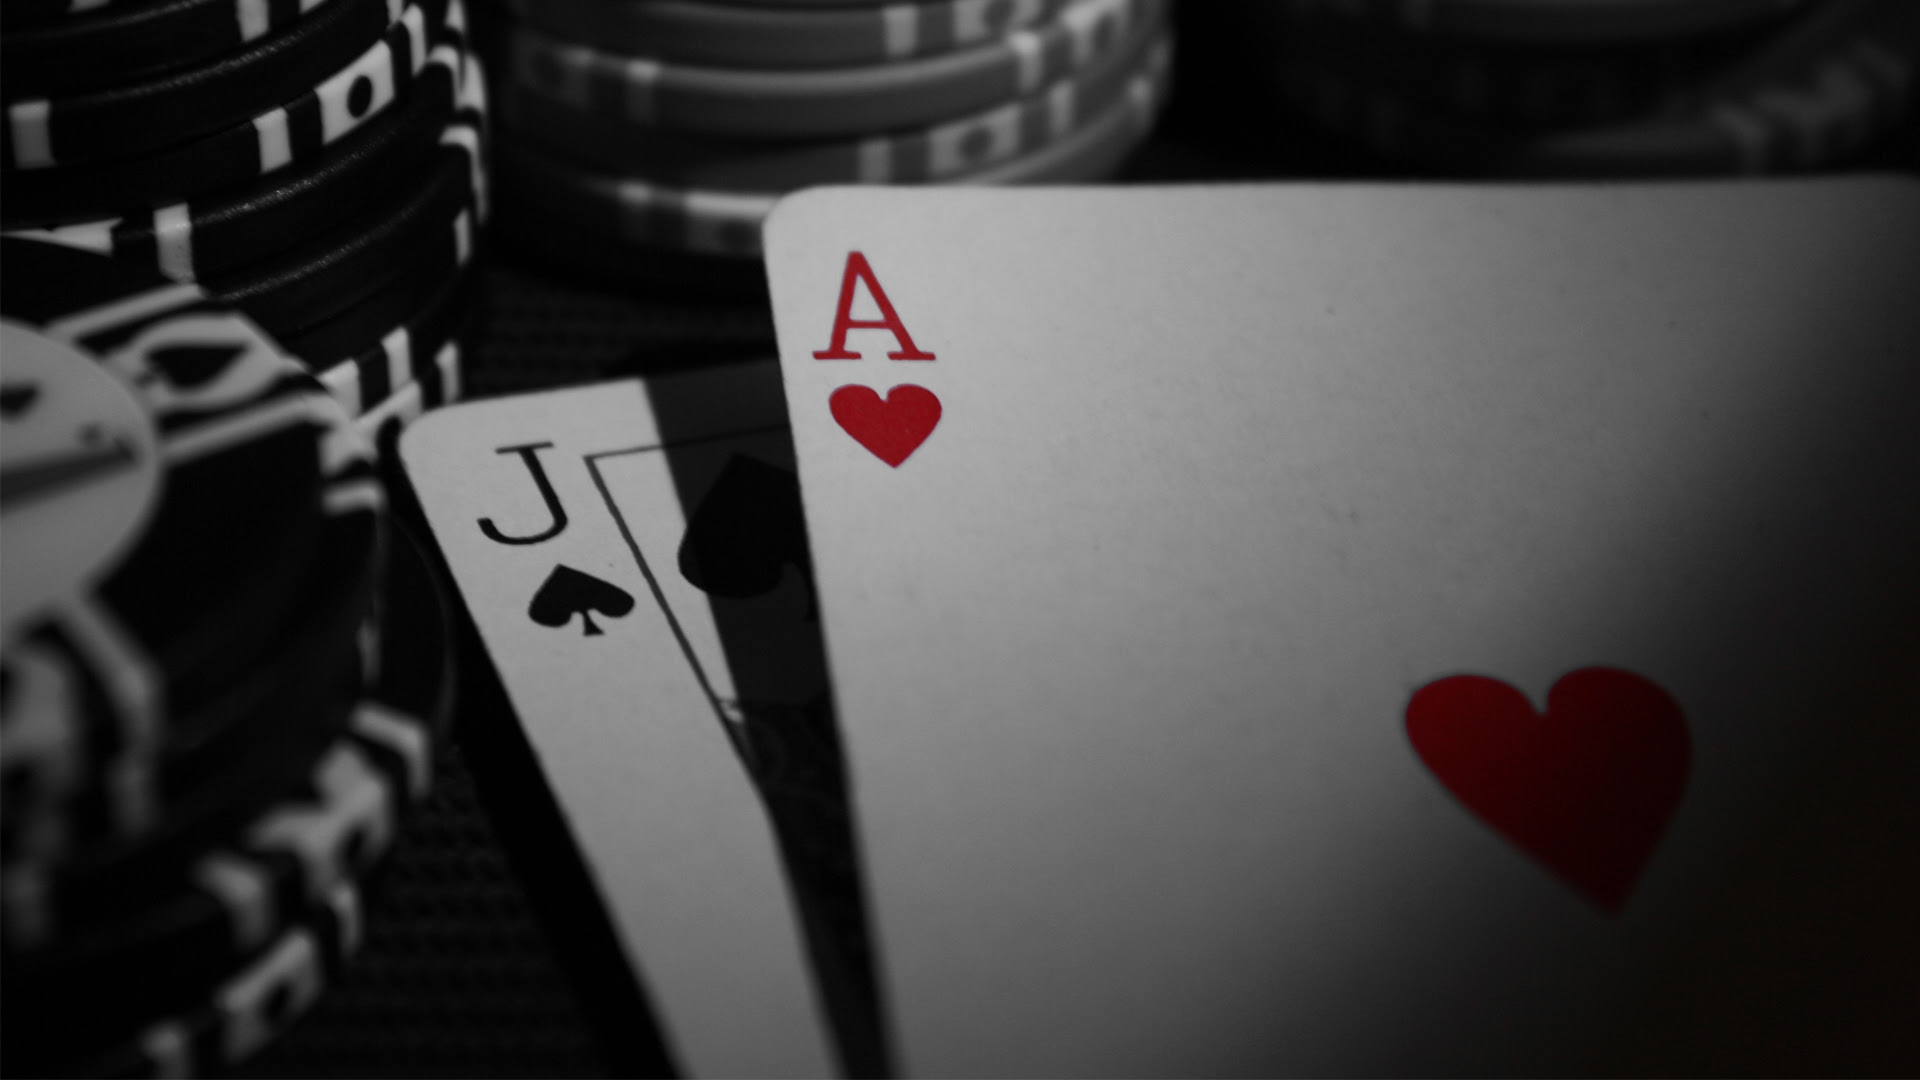 Cards Poker Chips 1920x1080 Wallpaper High Quality Wallpapers High